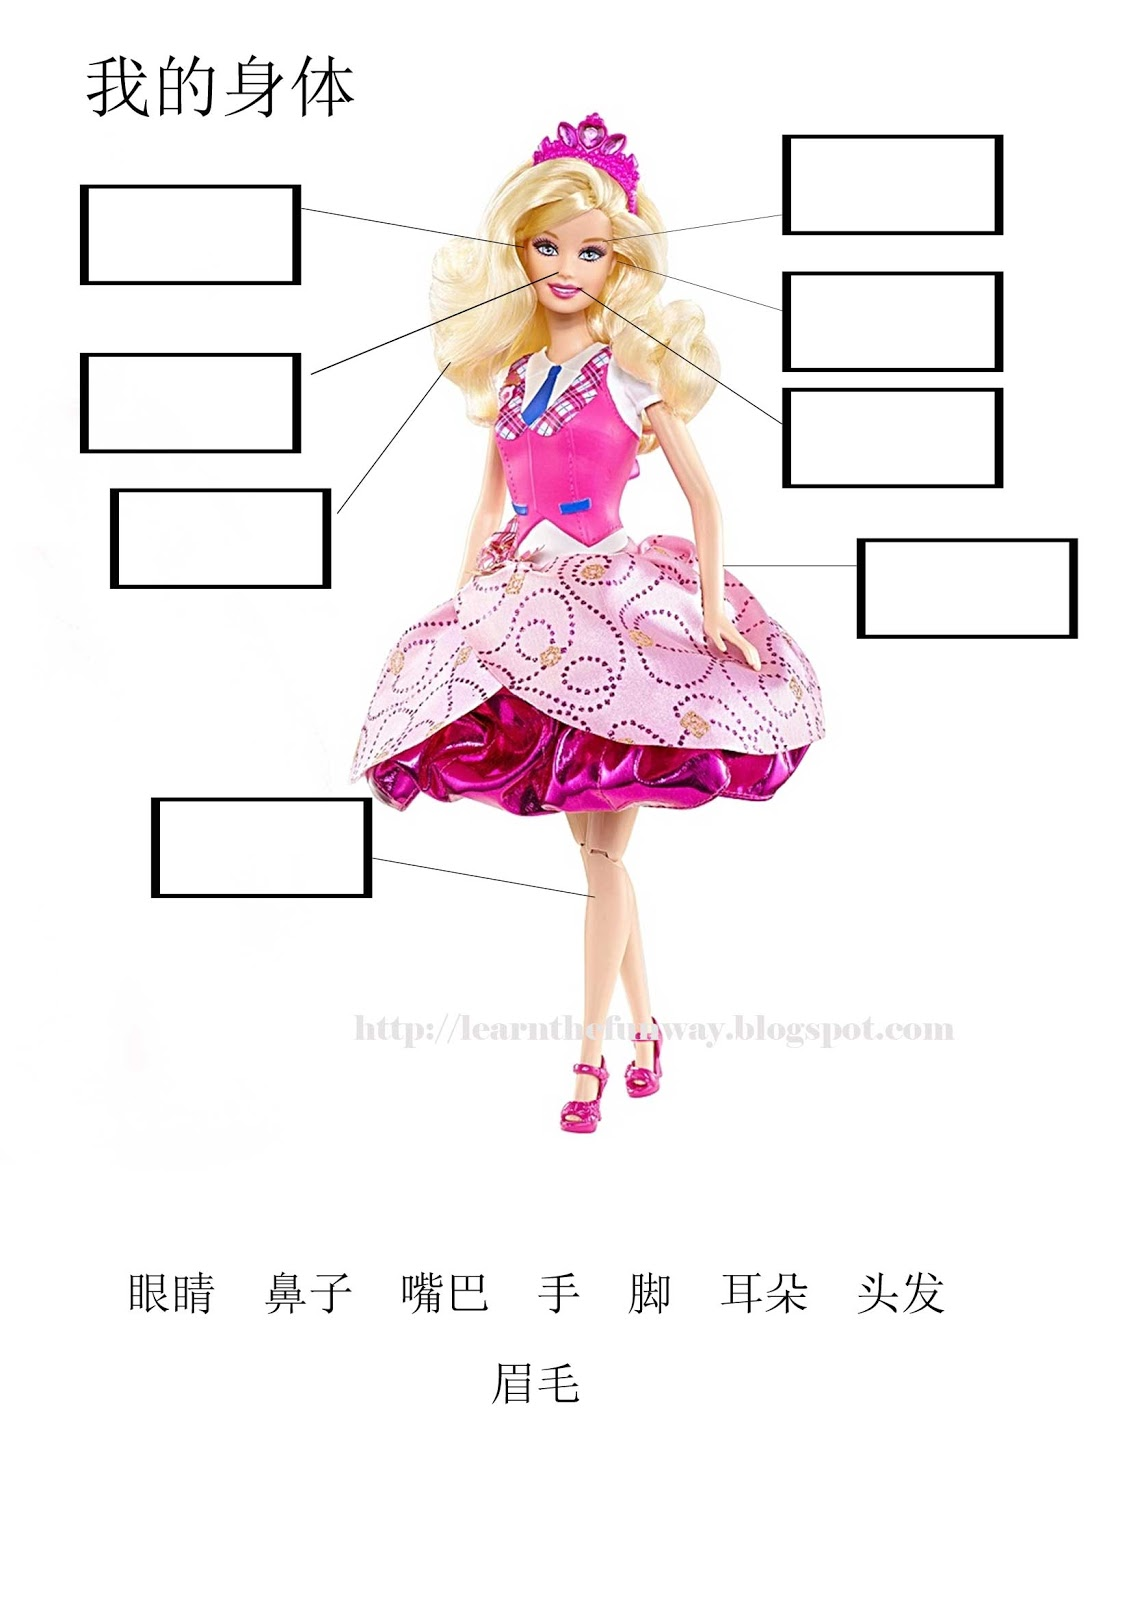 worksheet Kindergarten Mandarin Worksheet chinese fun class lesson on body learn the way body